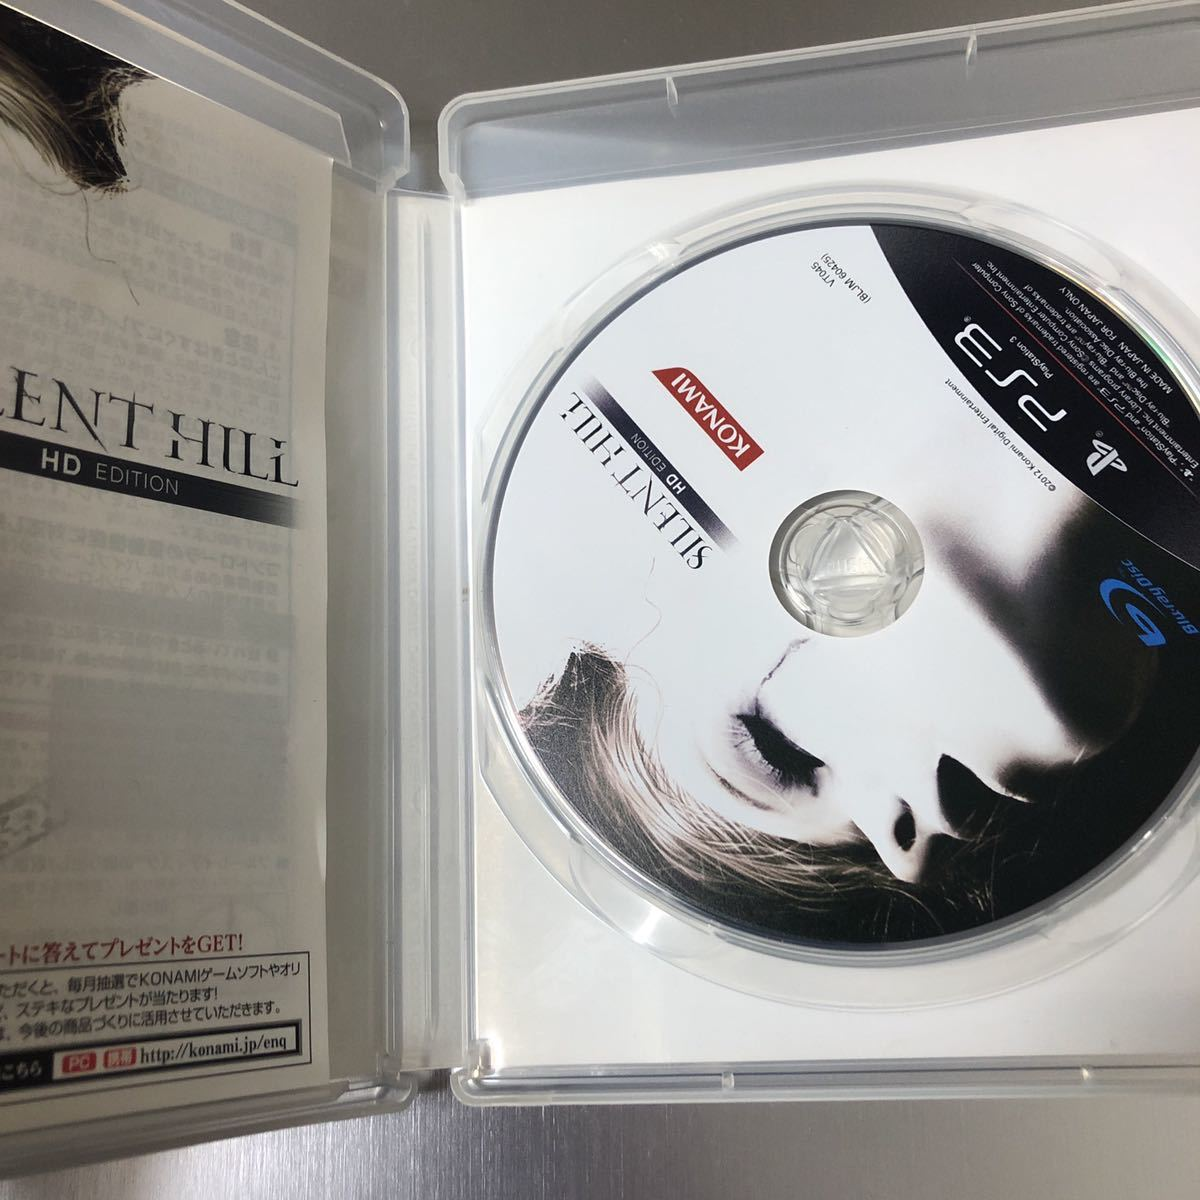 ◆PS3ソフト◆SILENT HILL サイレントヒル HD EDITION 最期の詩 2 & 3◆即決◆